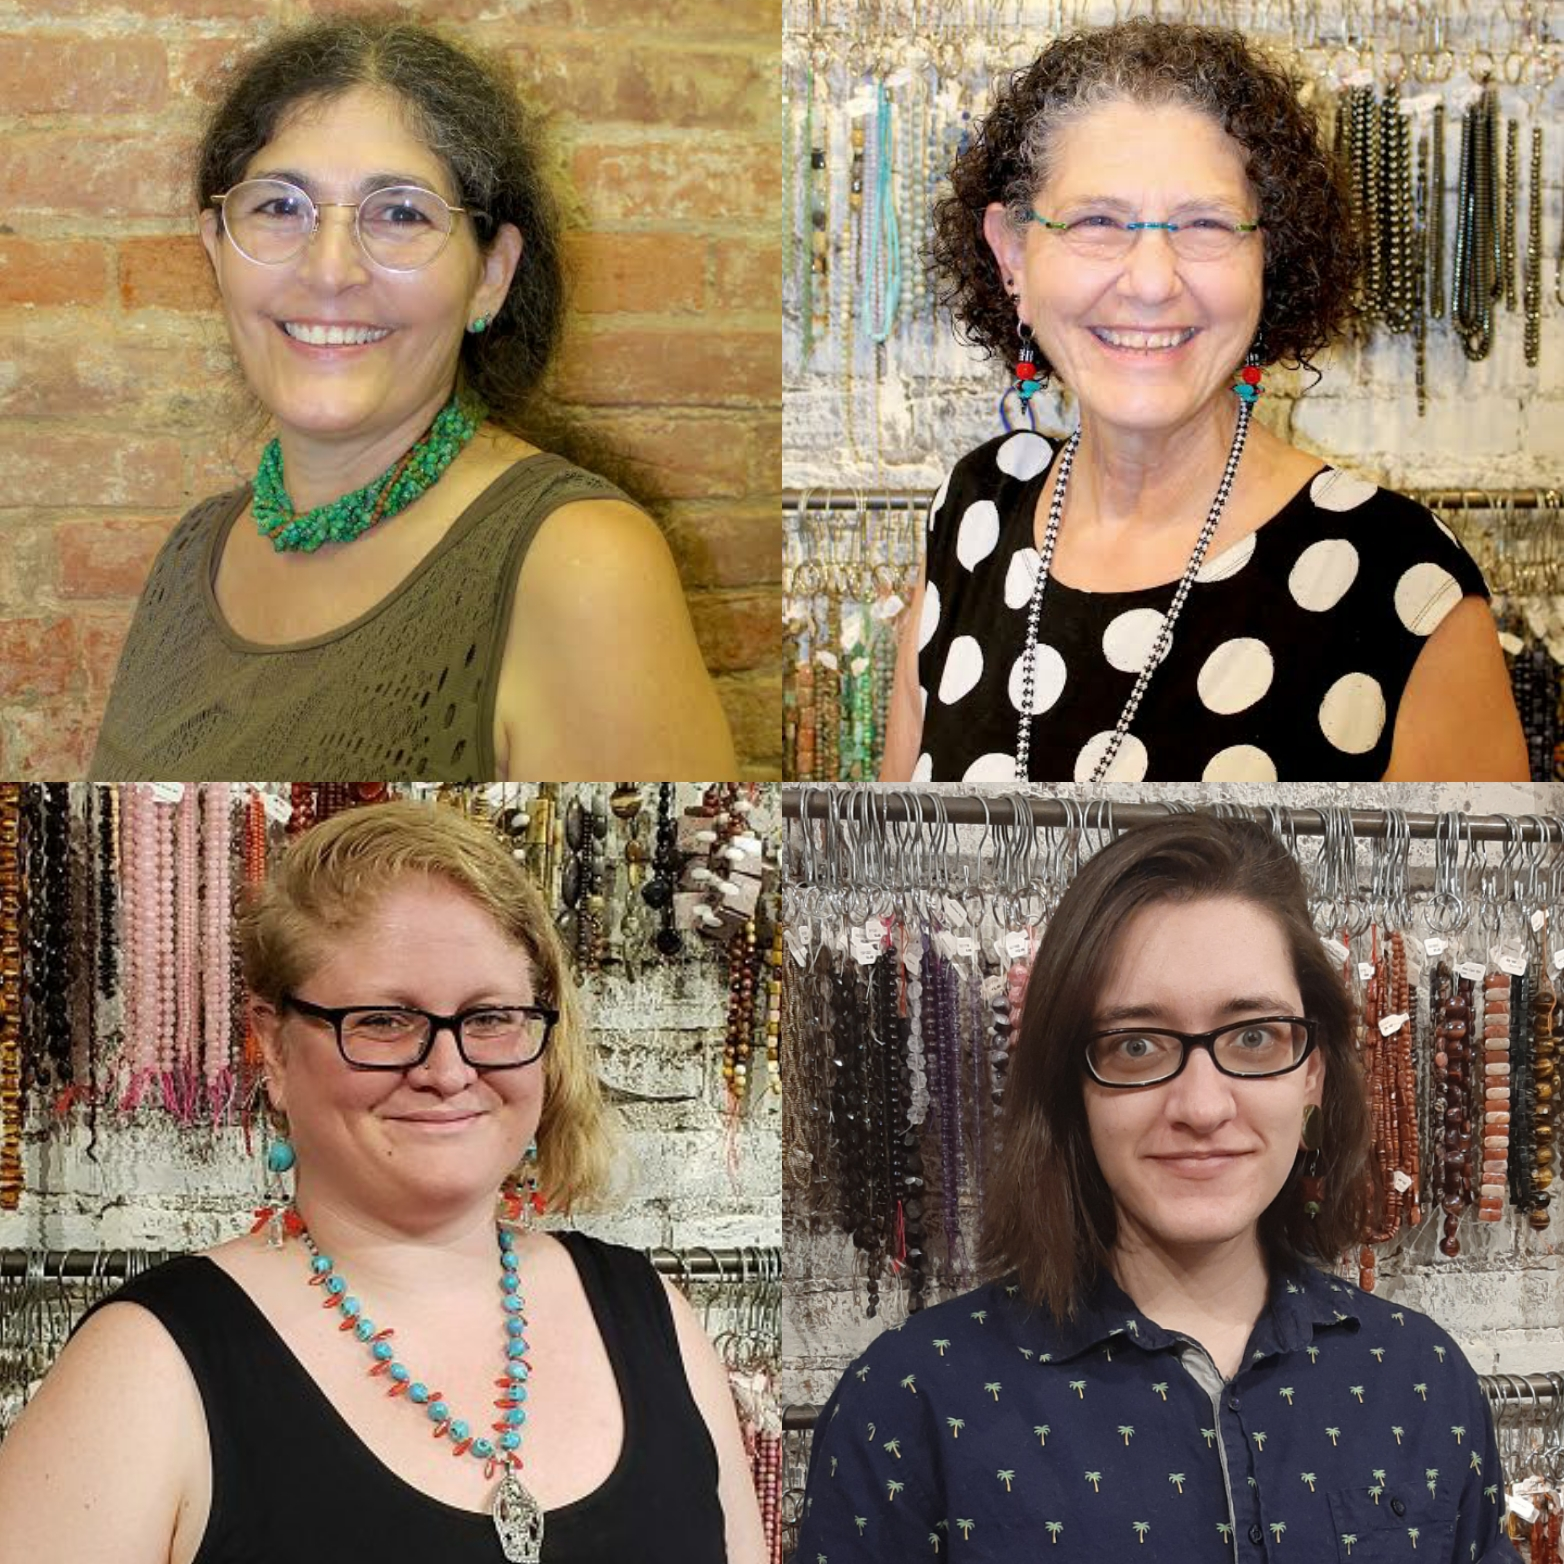 Beadology Iowa is staffed by Alyssa Jakowchuk, Karen Kubby, and Laurel Kubby.